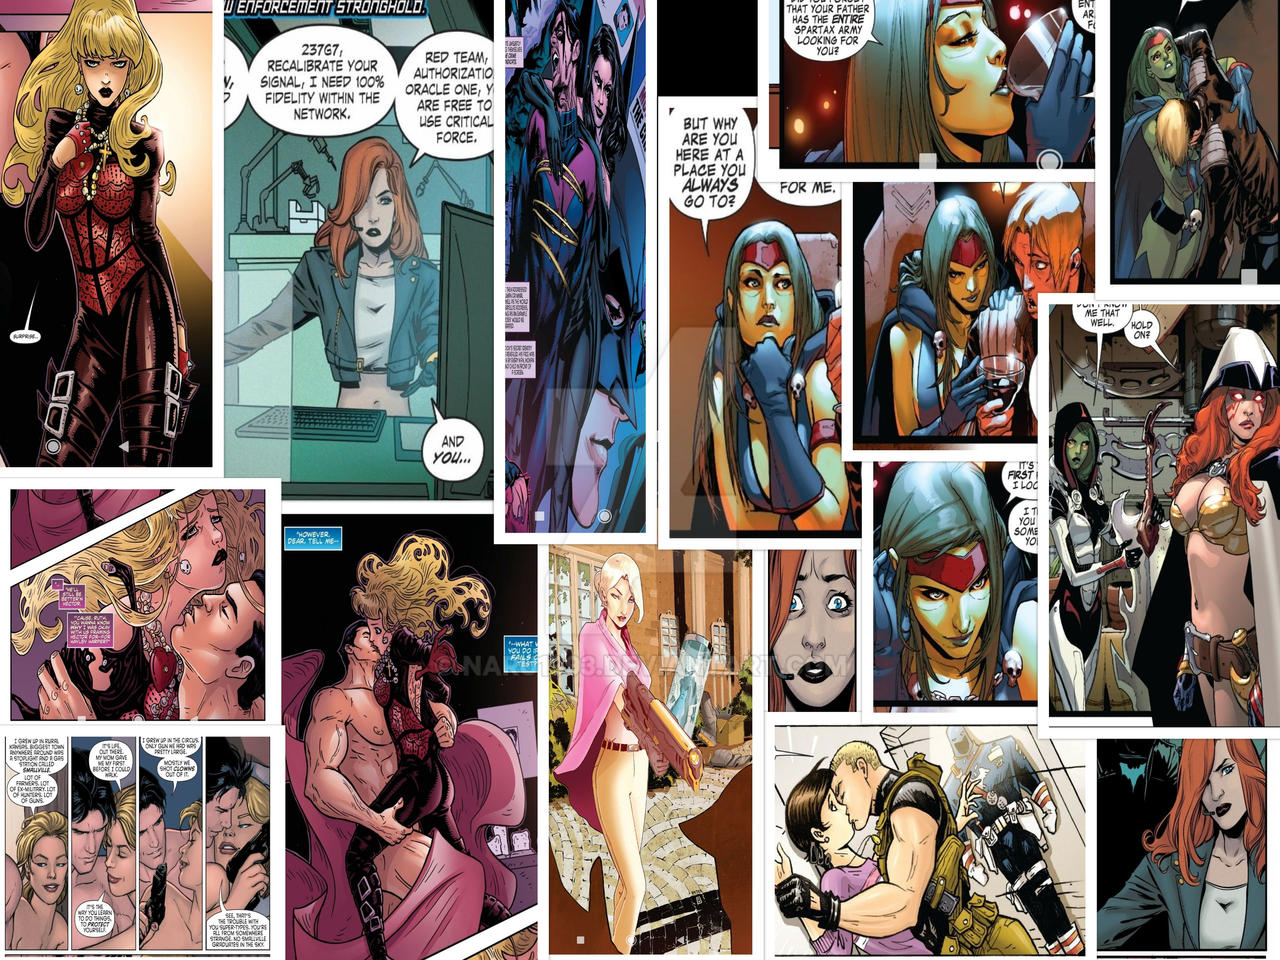 Marvel hot girls Hot Girls From Dc And Marvel Comics By Naru1993 On Deviantart